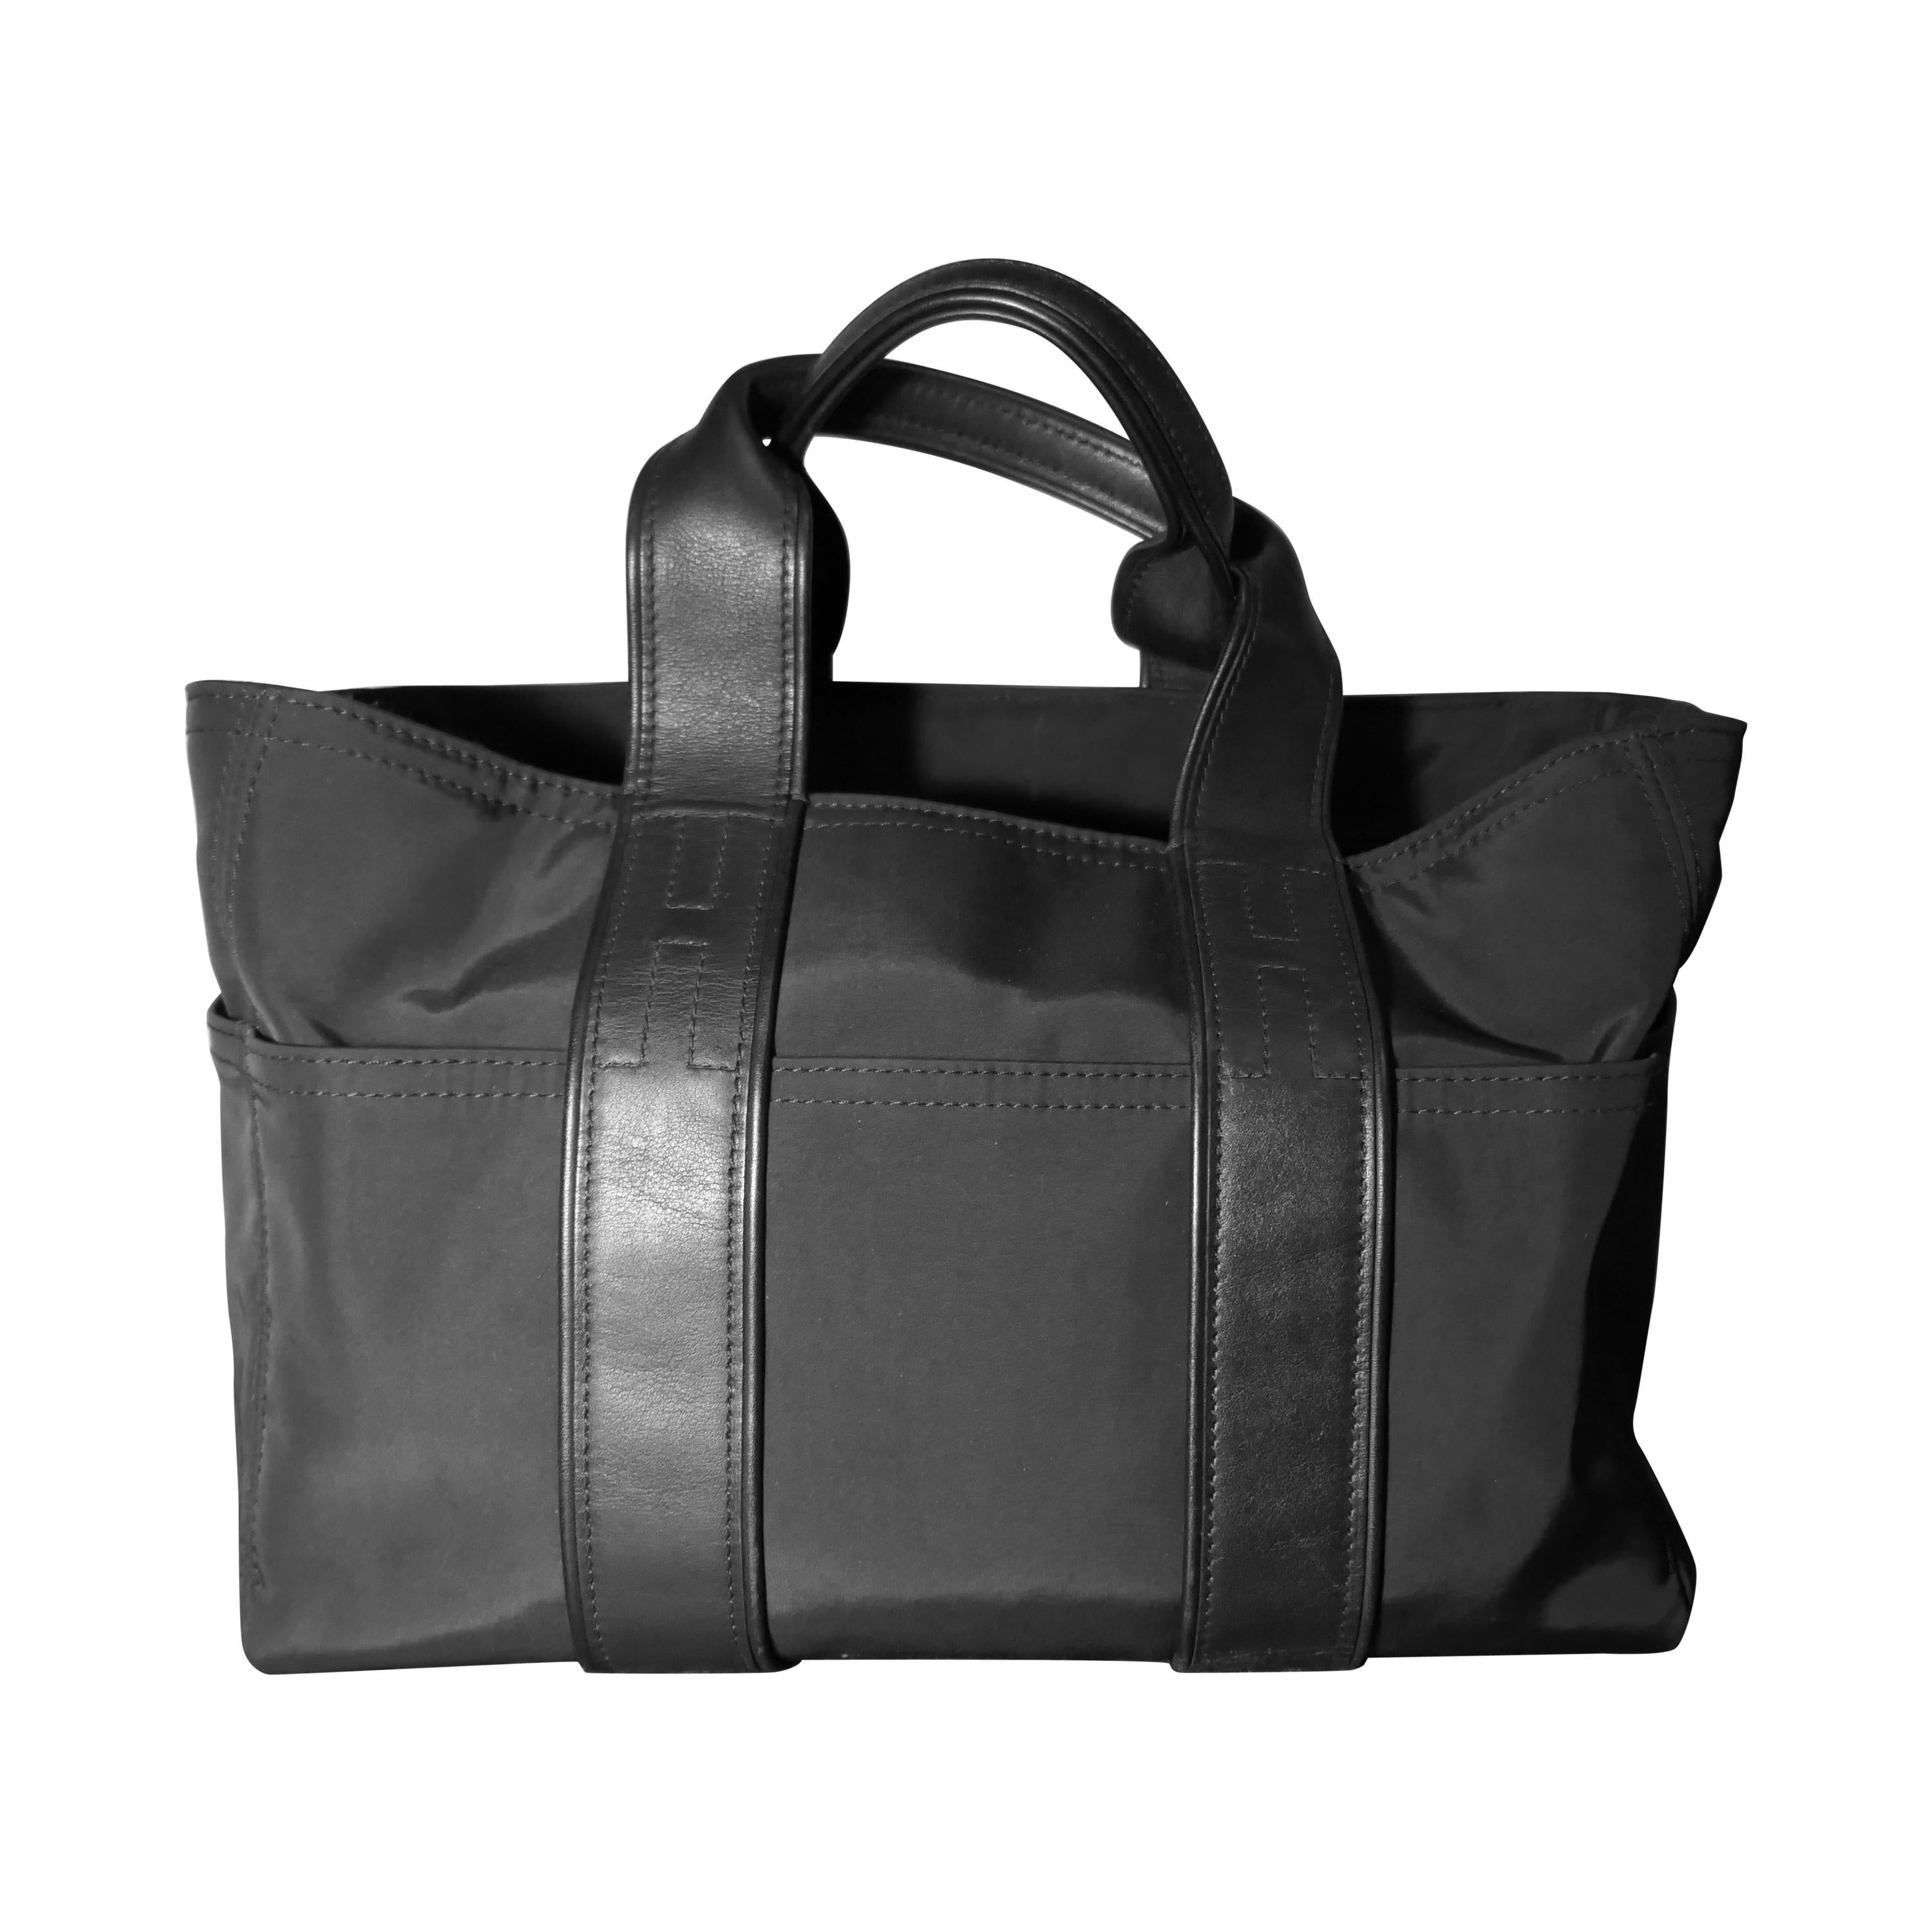 Vintage Authentic Hermes Black Leather and Nylon Fabric Acapulco PM Tote Bag